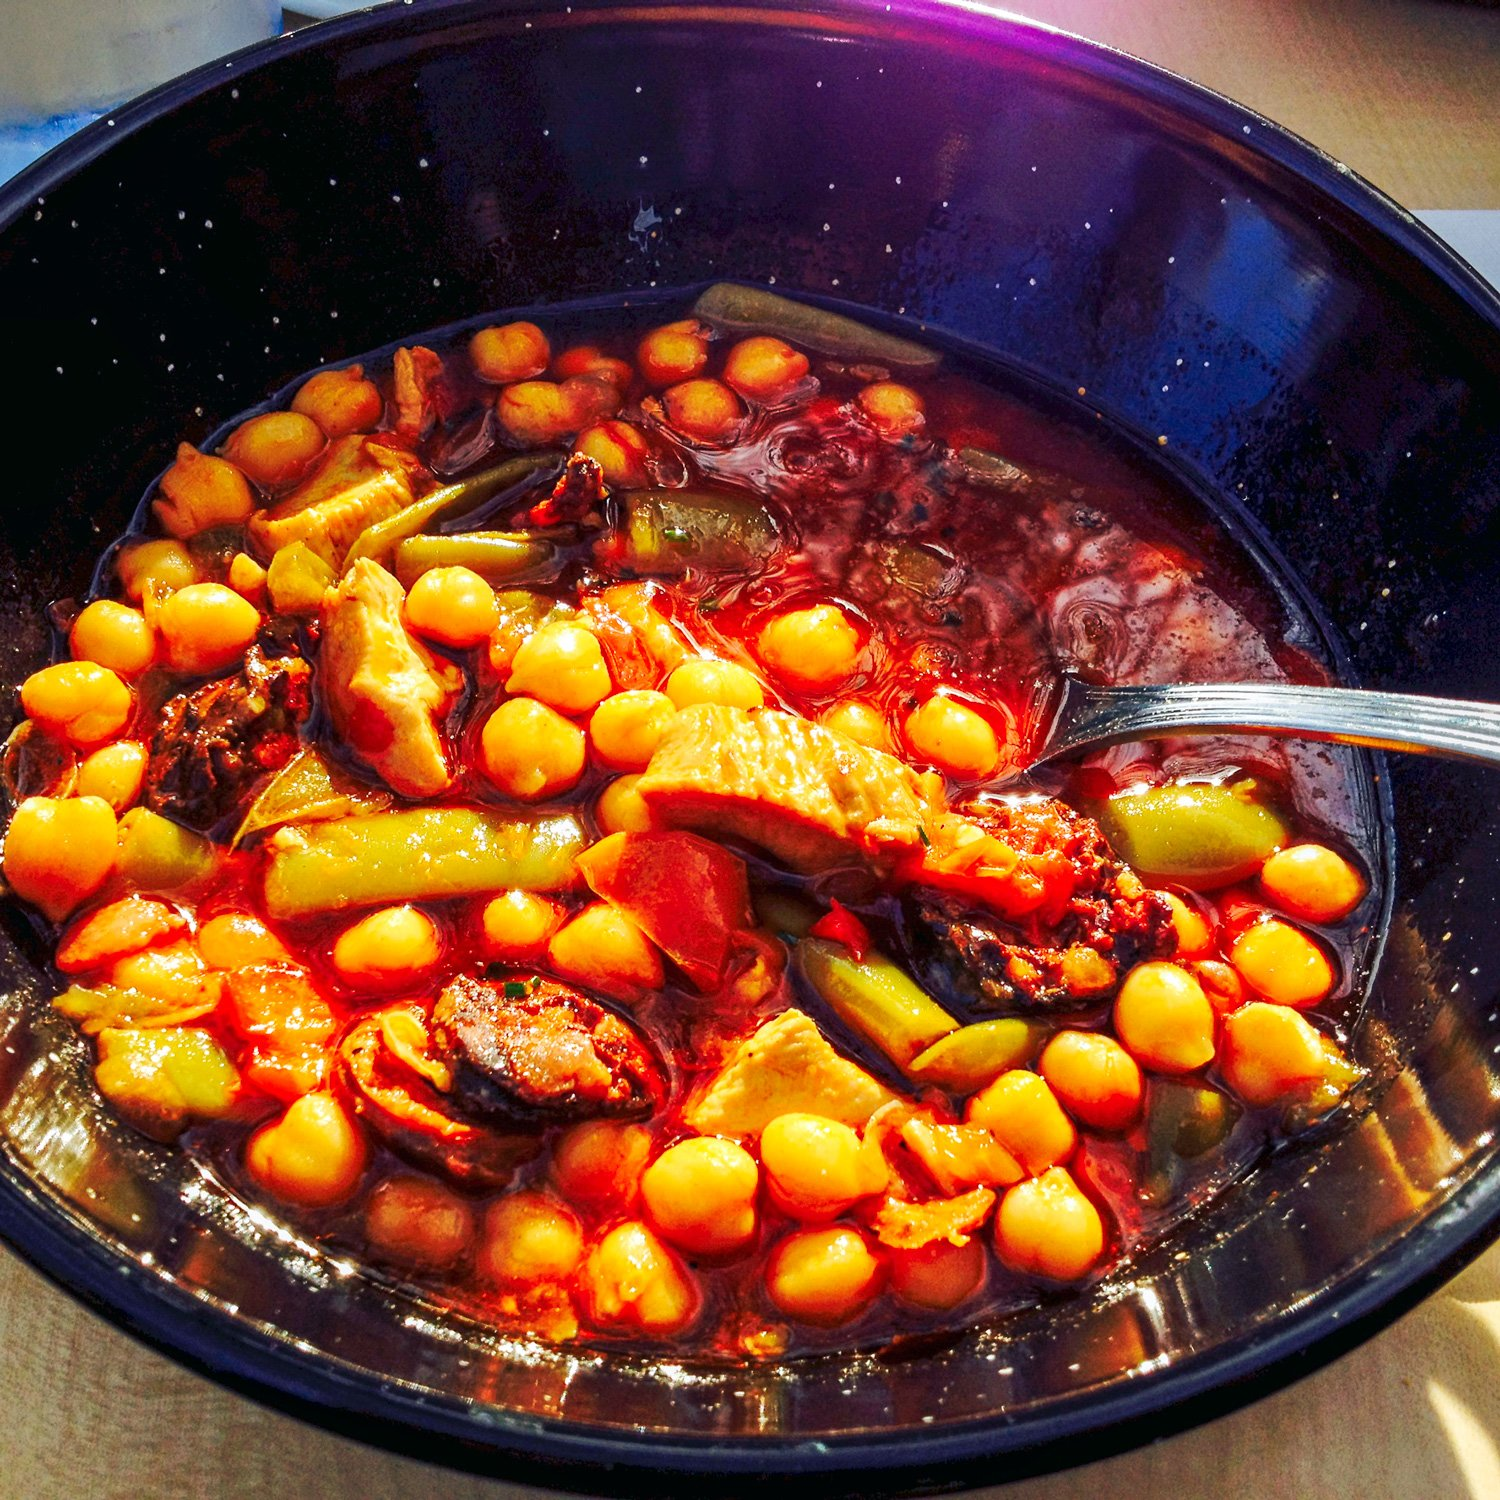 Chickpeas Green Beans With Pork And Spanish Chorizo - a heart-warming dish from Spain. Chickpeas are popular in most parts of Spain and chorizo is a staple. Use Spanish paprika and Spanish chorizo for a more authentic flavor.